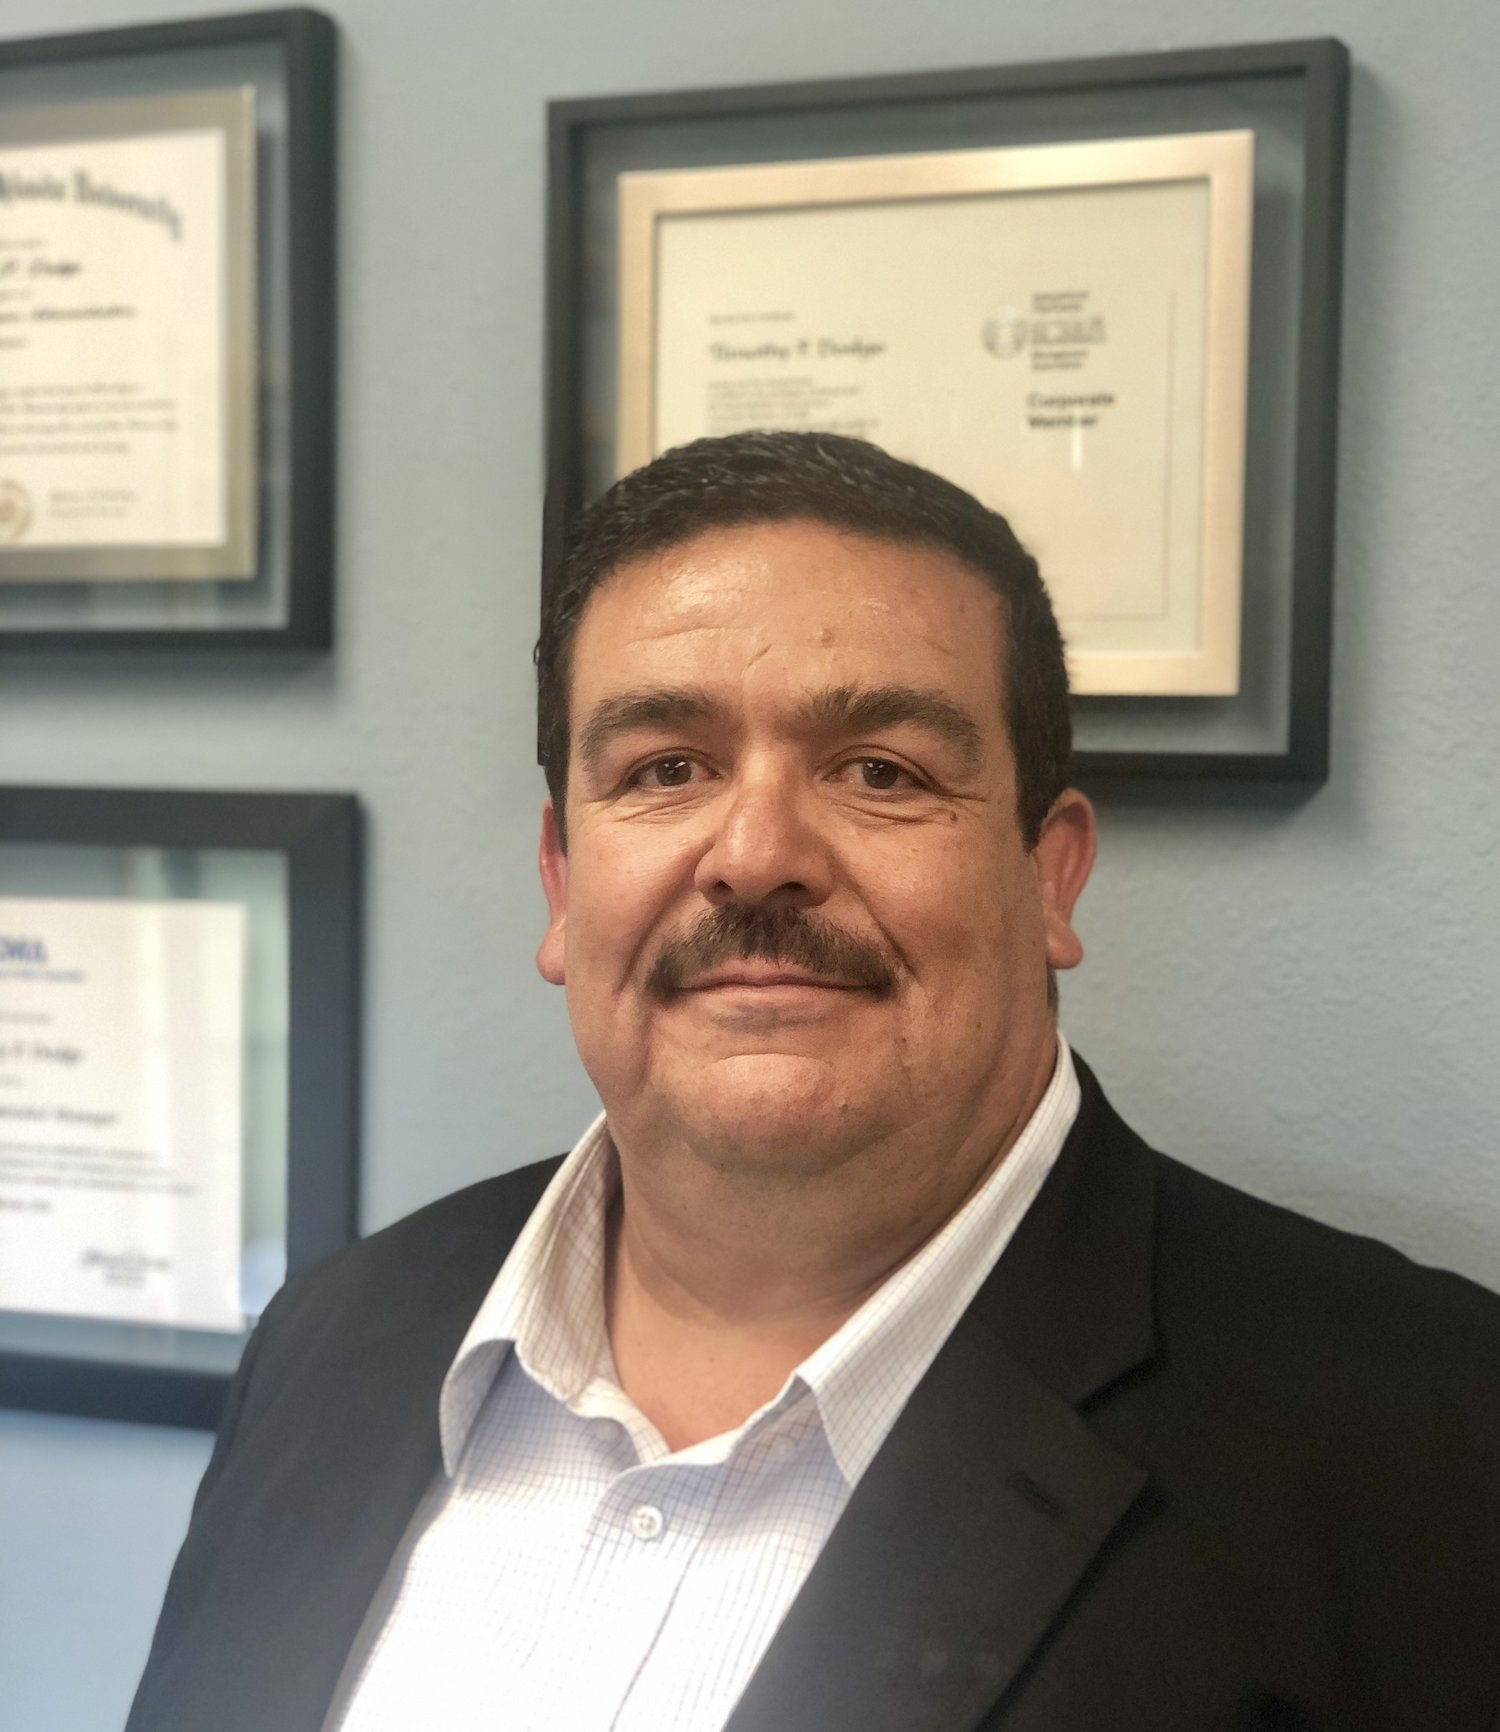 Ruidoso Village Manager, Timothy P. Dodge